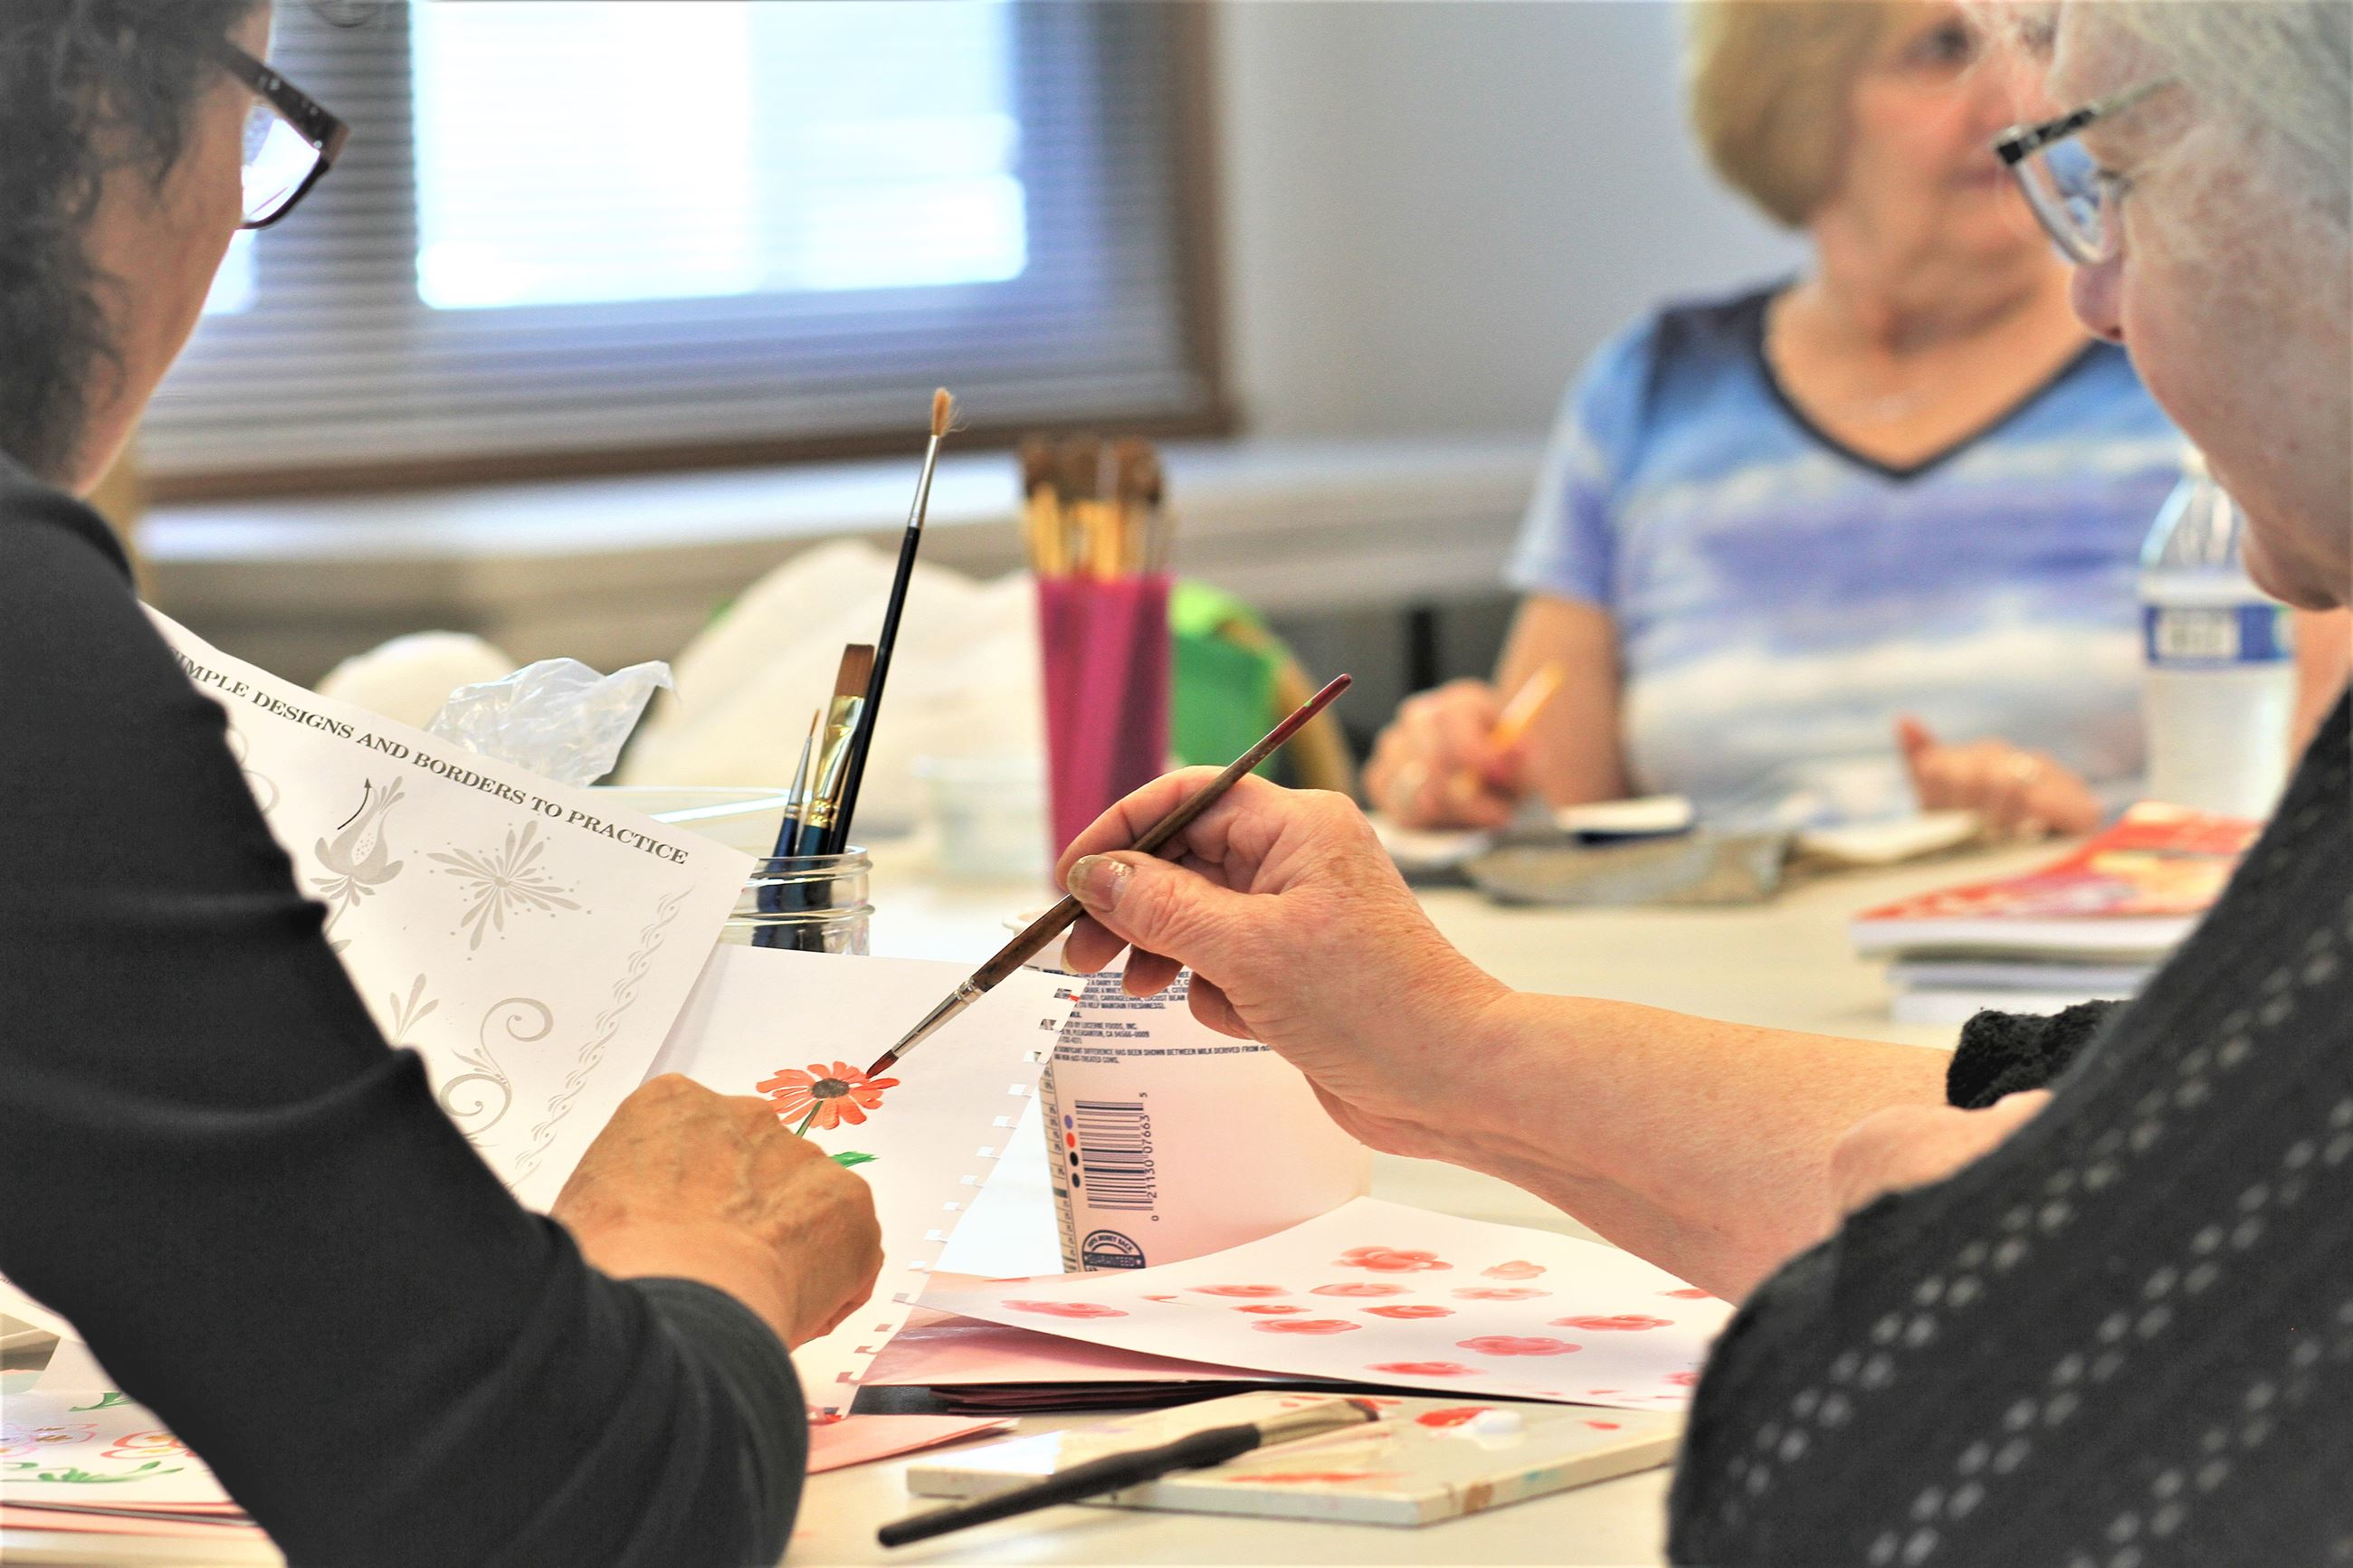 Enjoy Tole Painting in Mount Rainier at the Senior Center